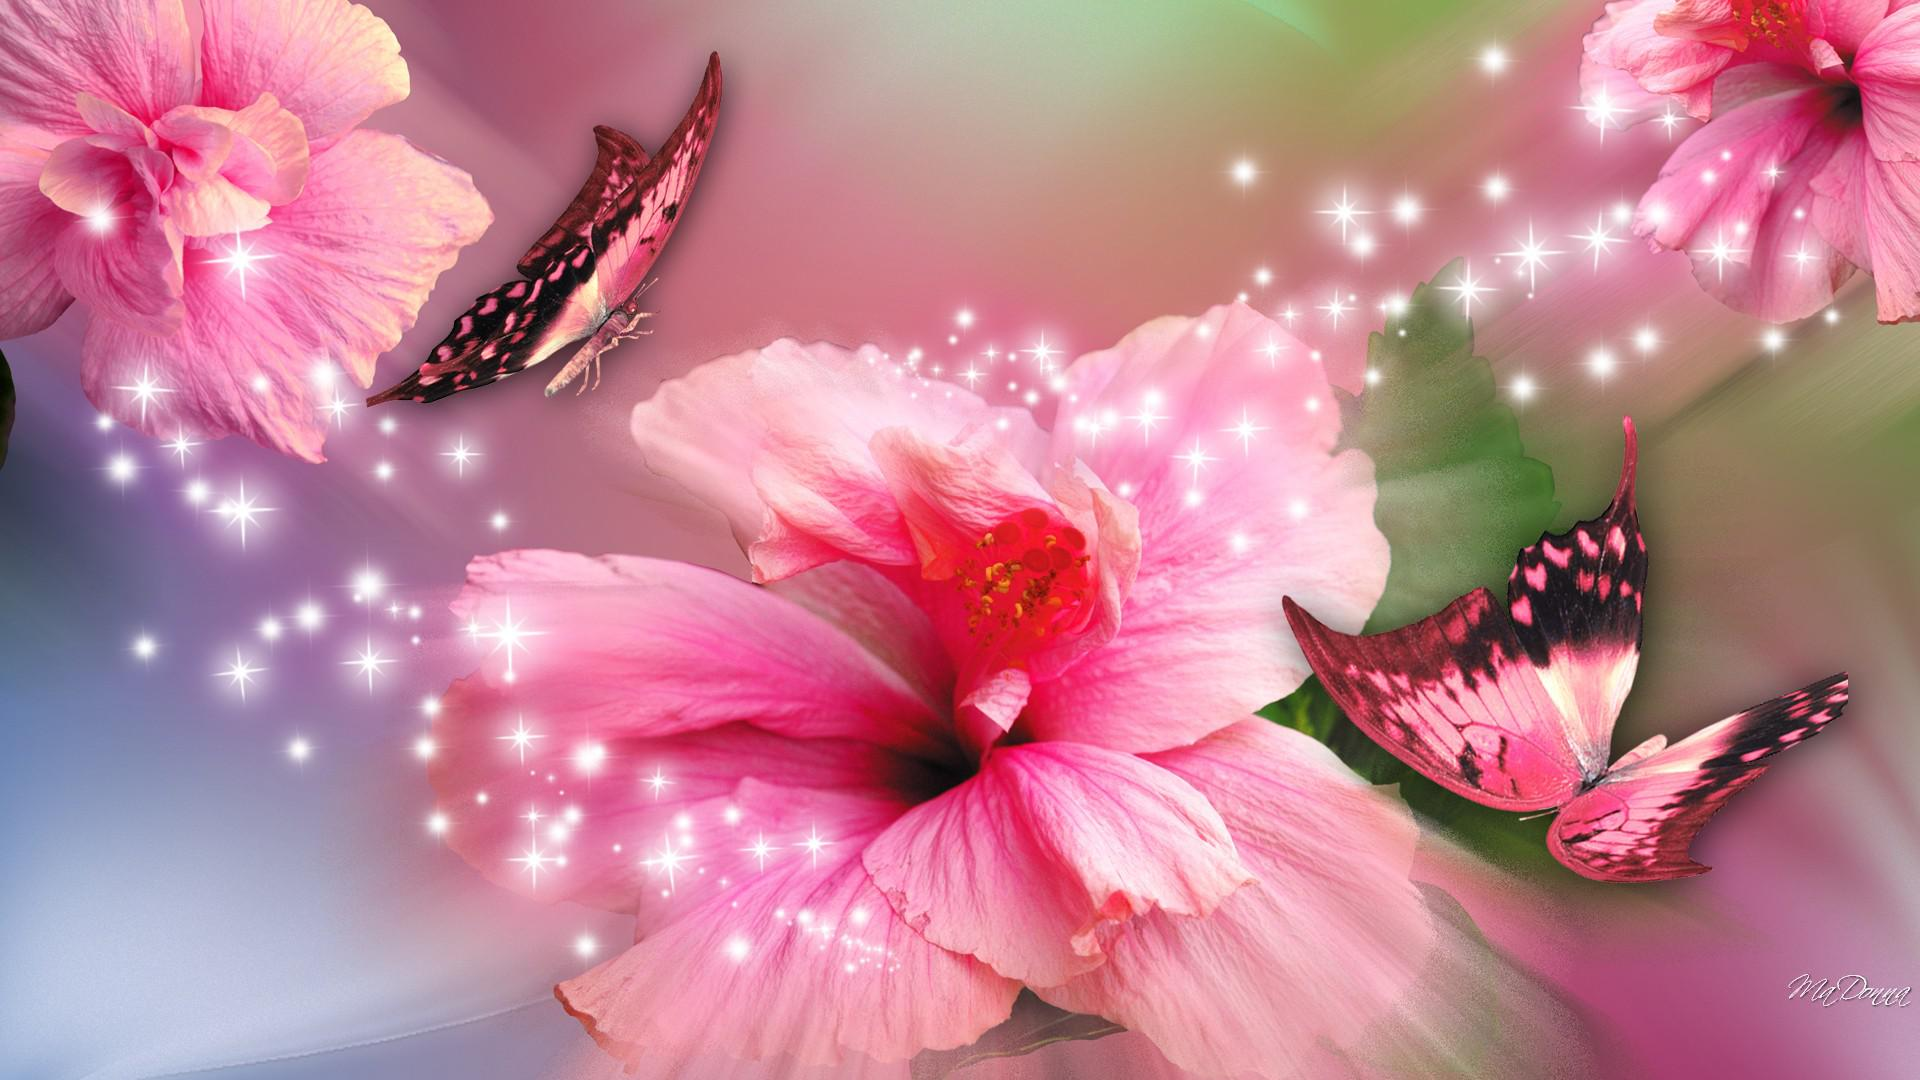 Pink Butterfly Wallpaper Flower - WallpaperSafari